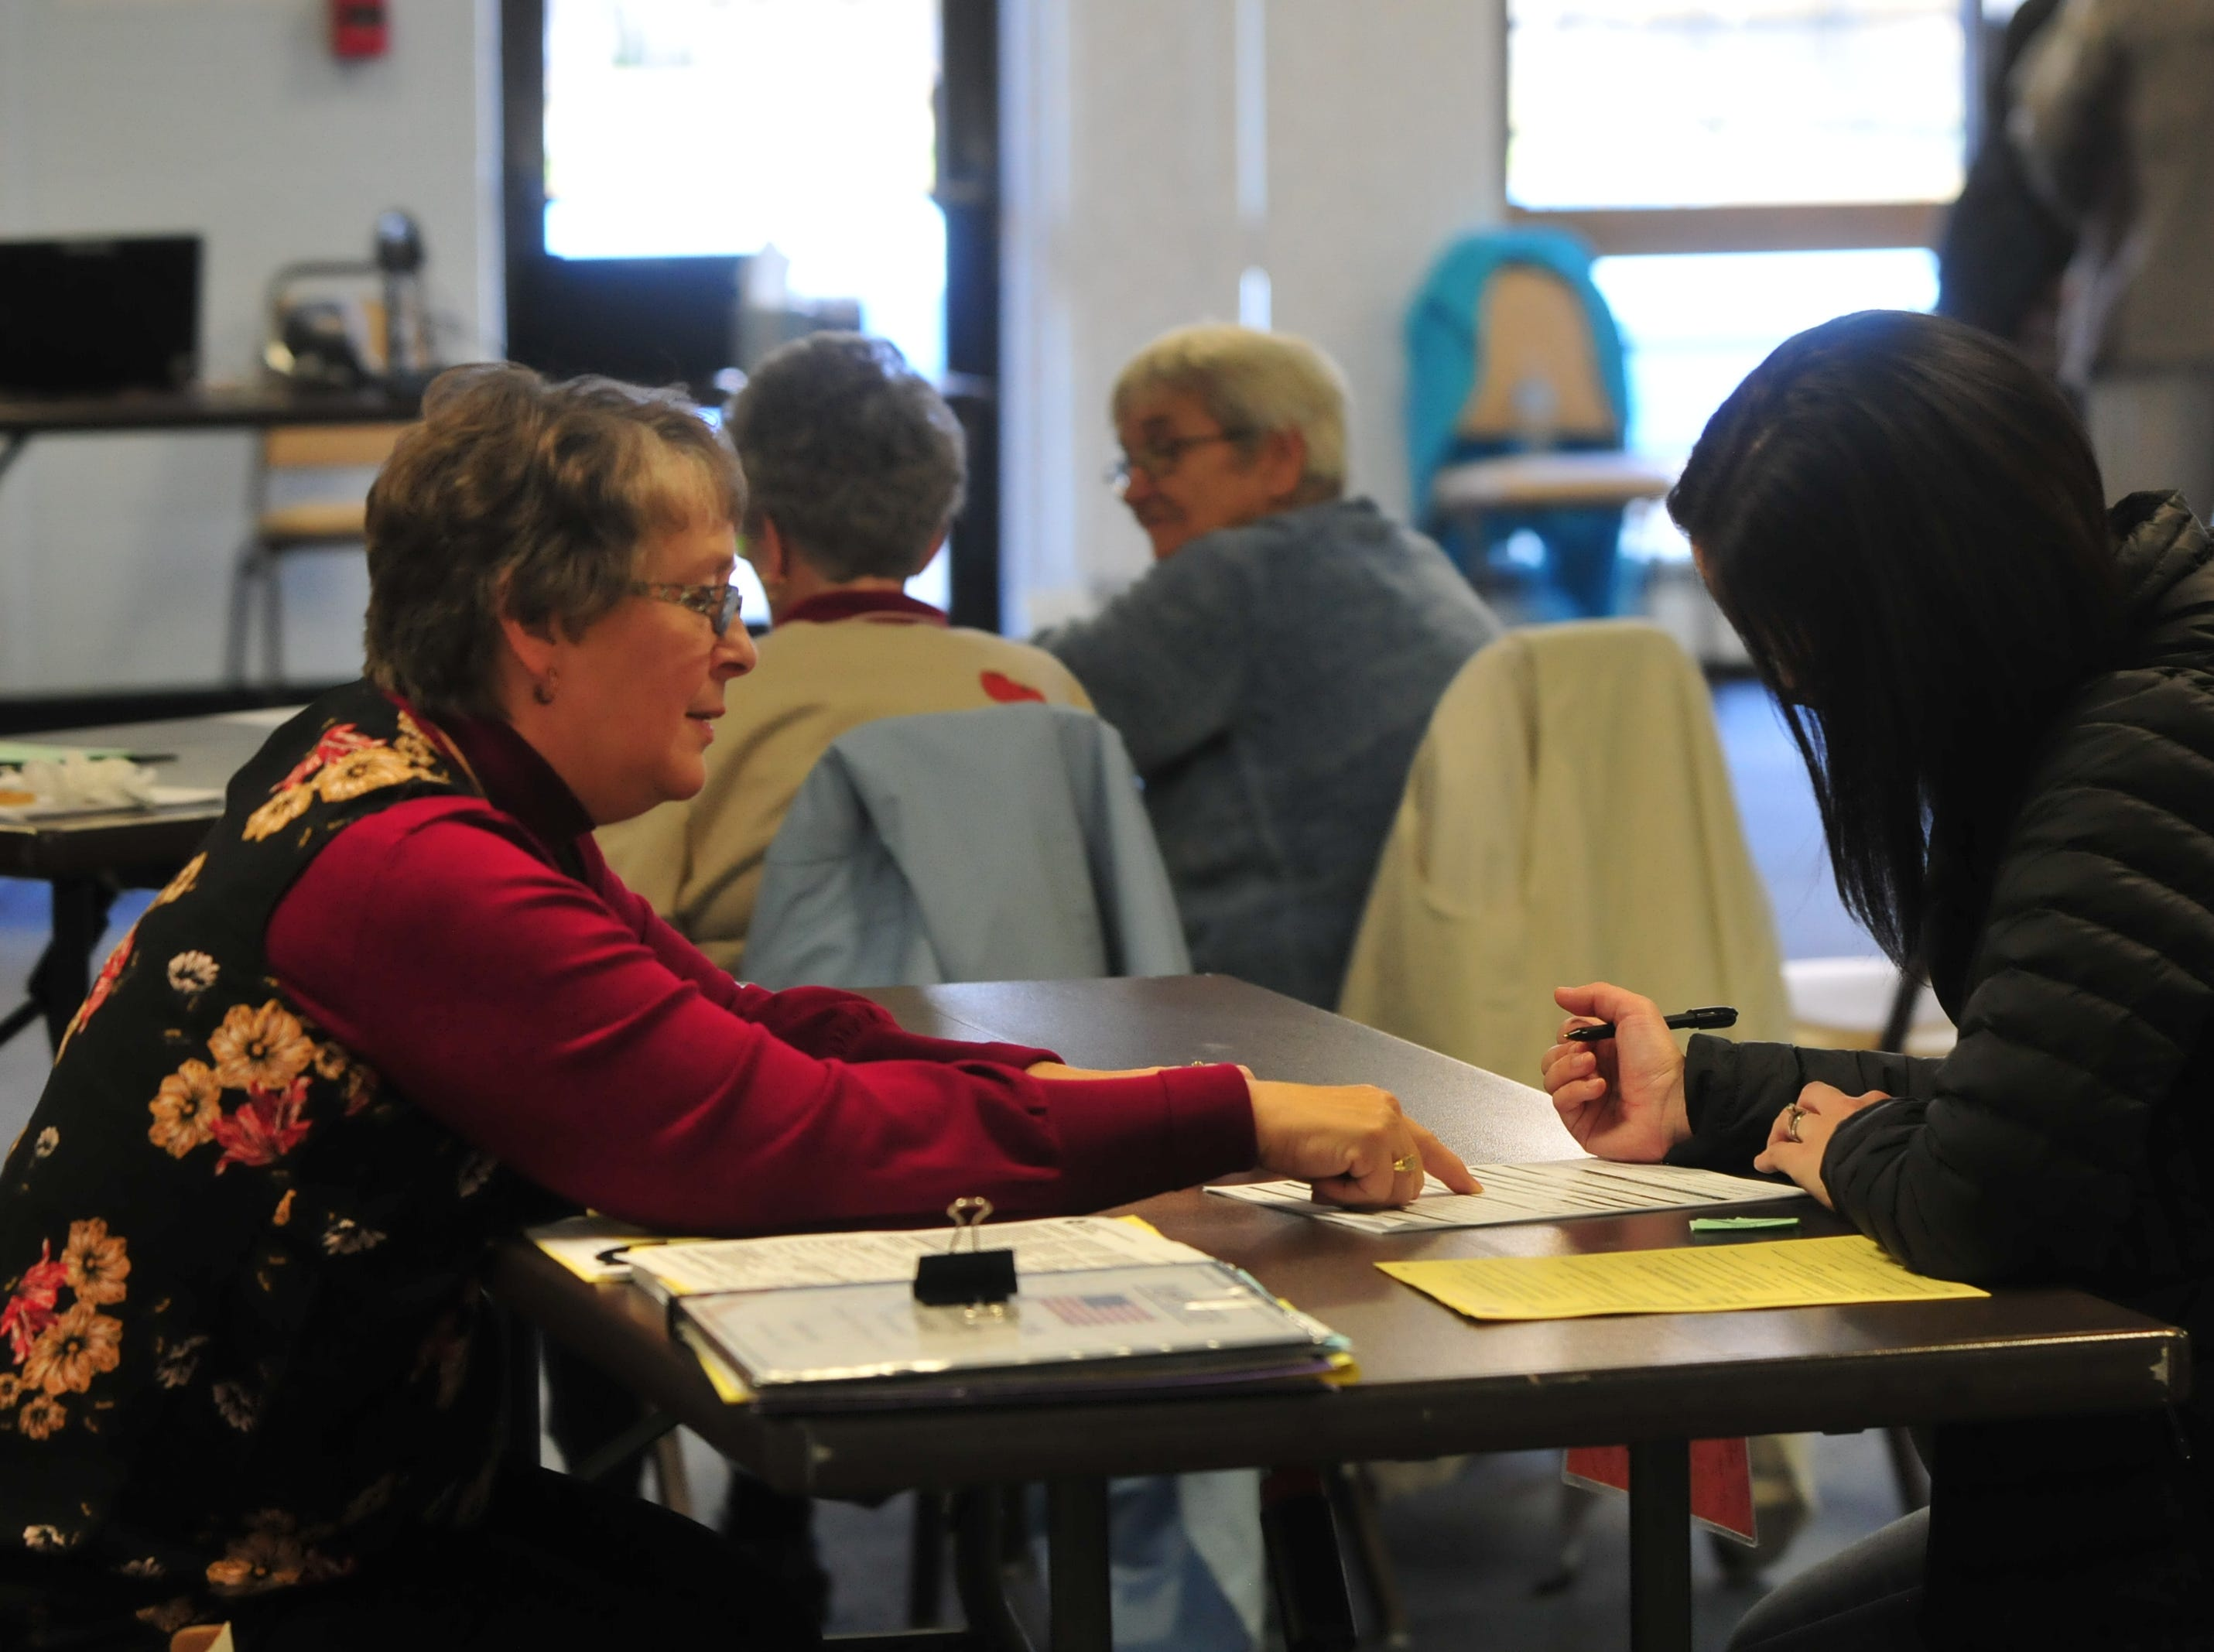 Voters cast their ballots at the Golay Center in Cambridge City on Election Day, Nov. 6, 2018.